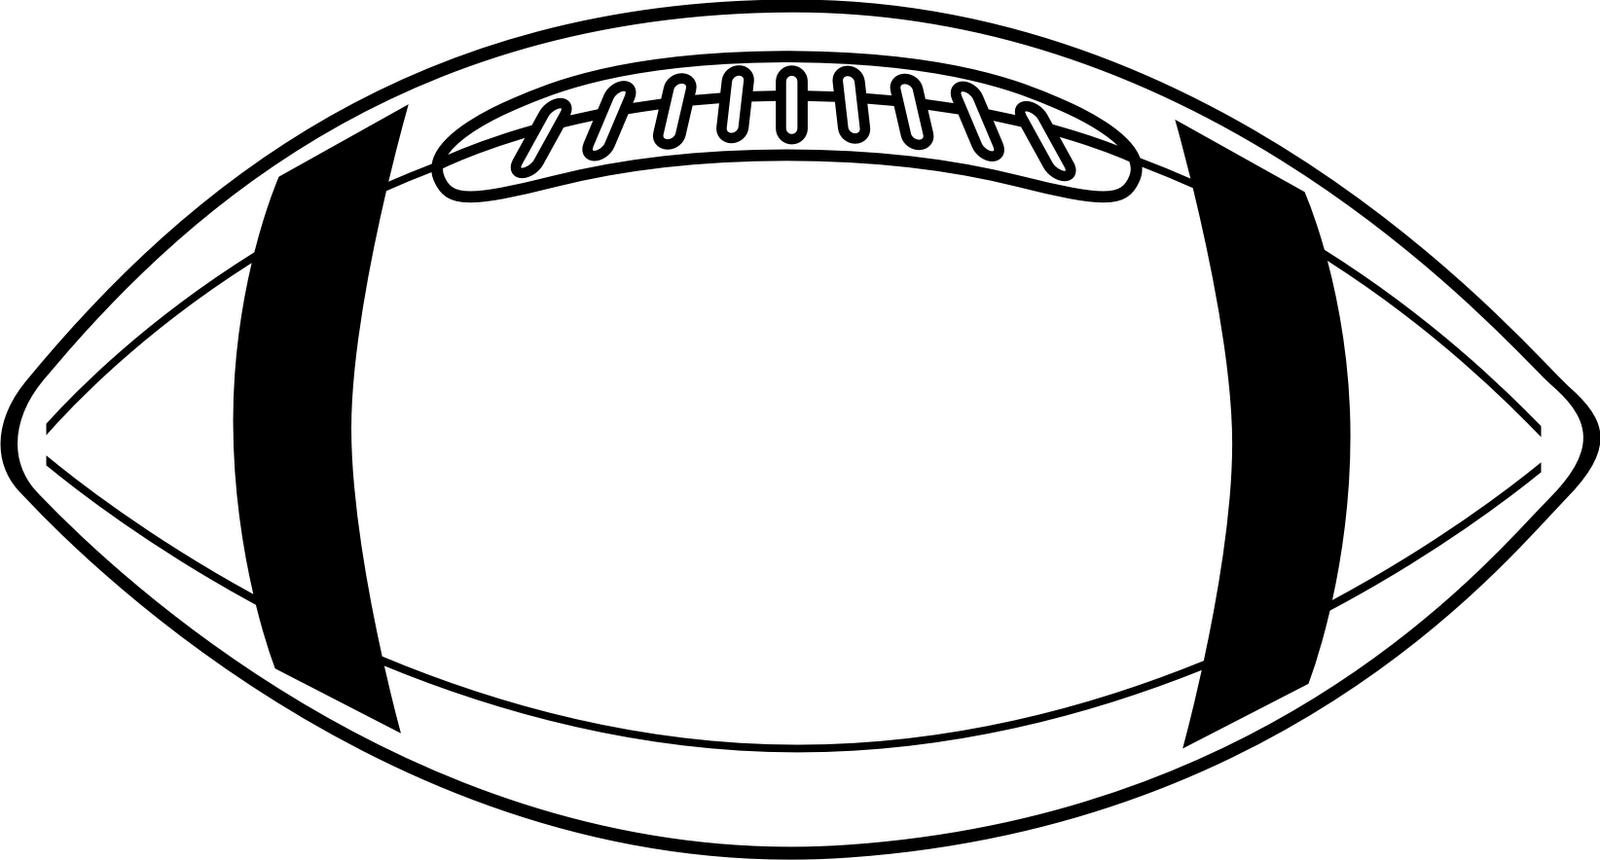 Clip Art Football Field Black - Football Clipart Black And White